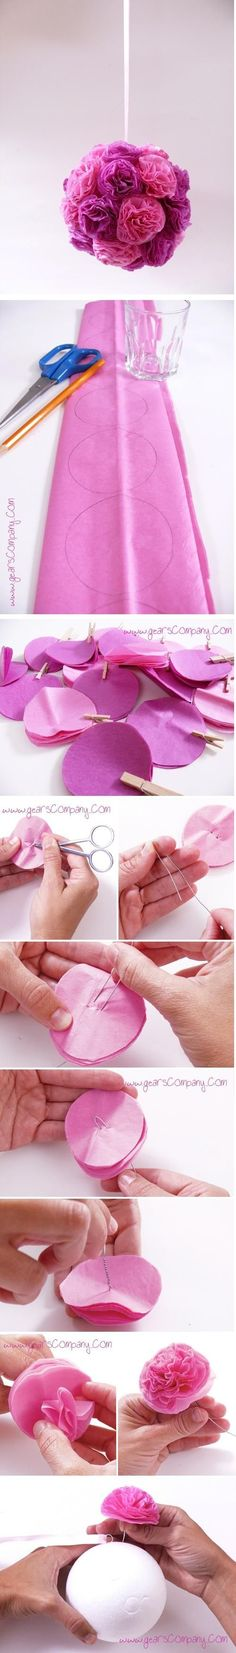 DIY Tutorial: Paper Flower Ball :::